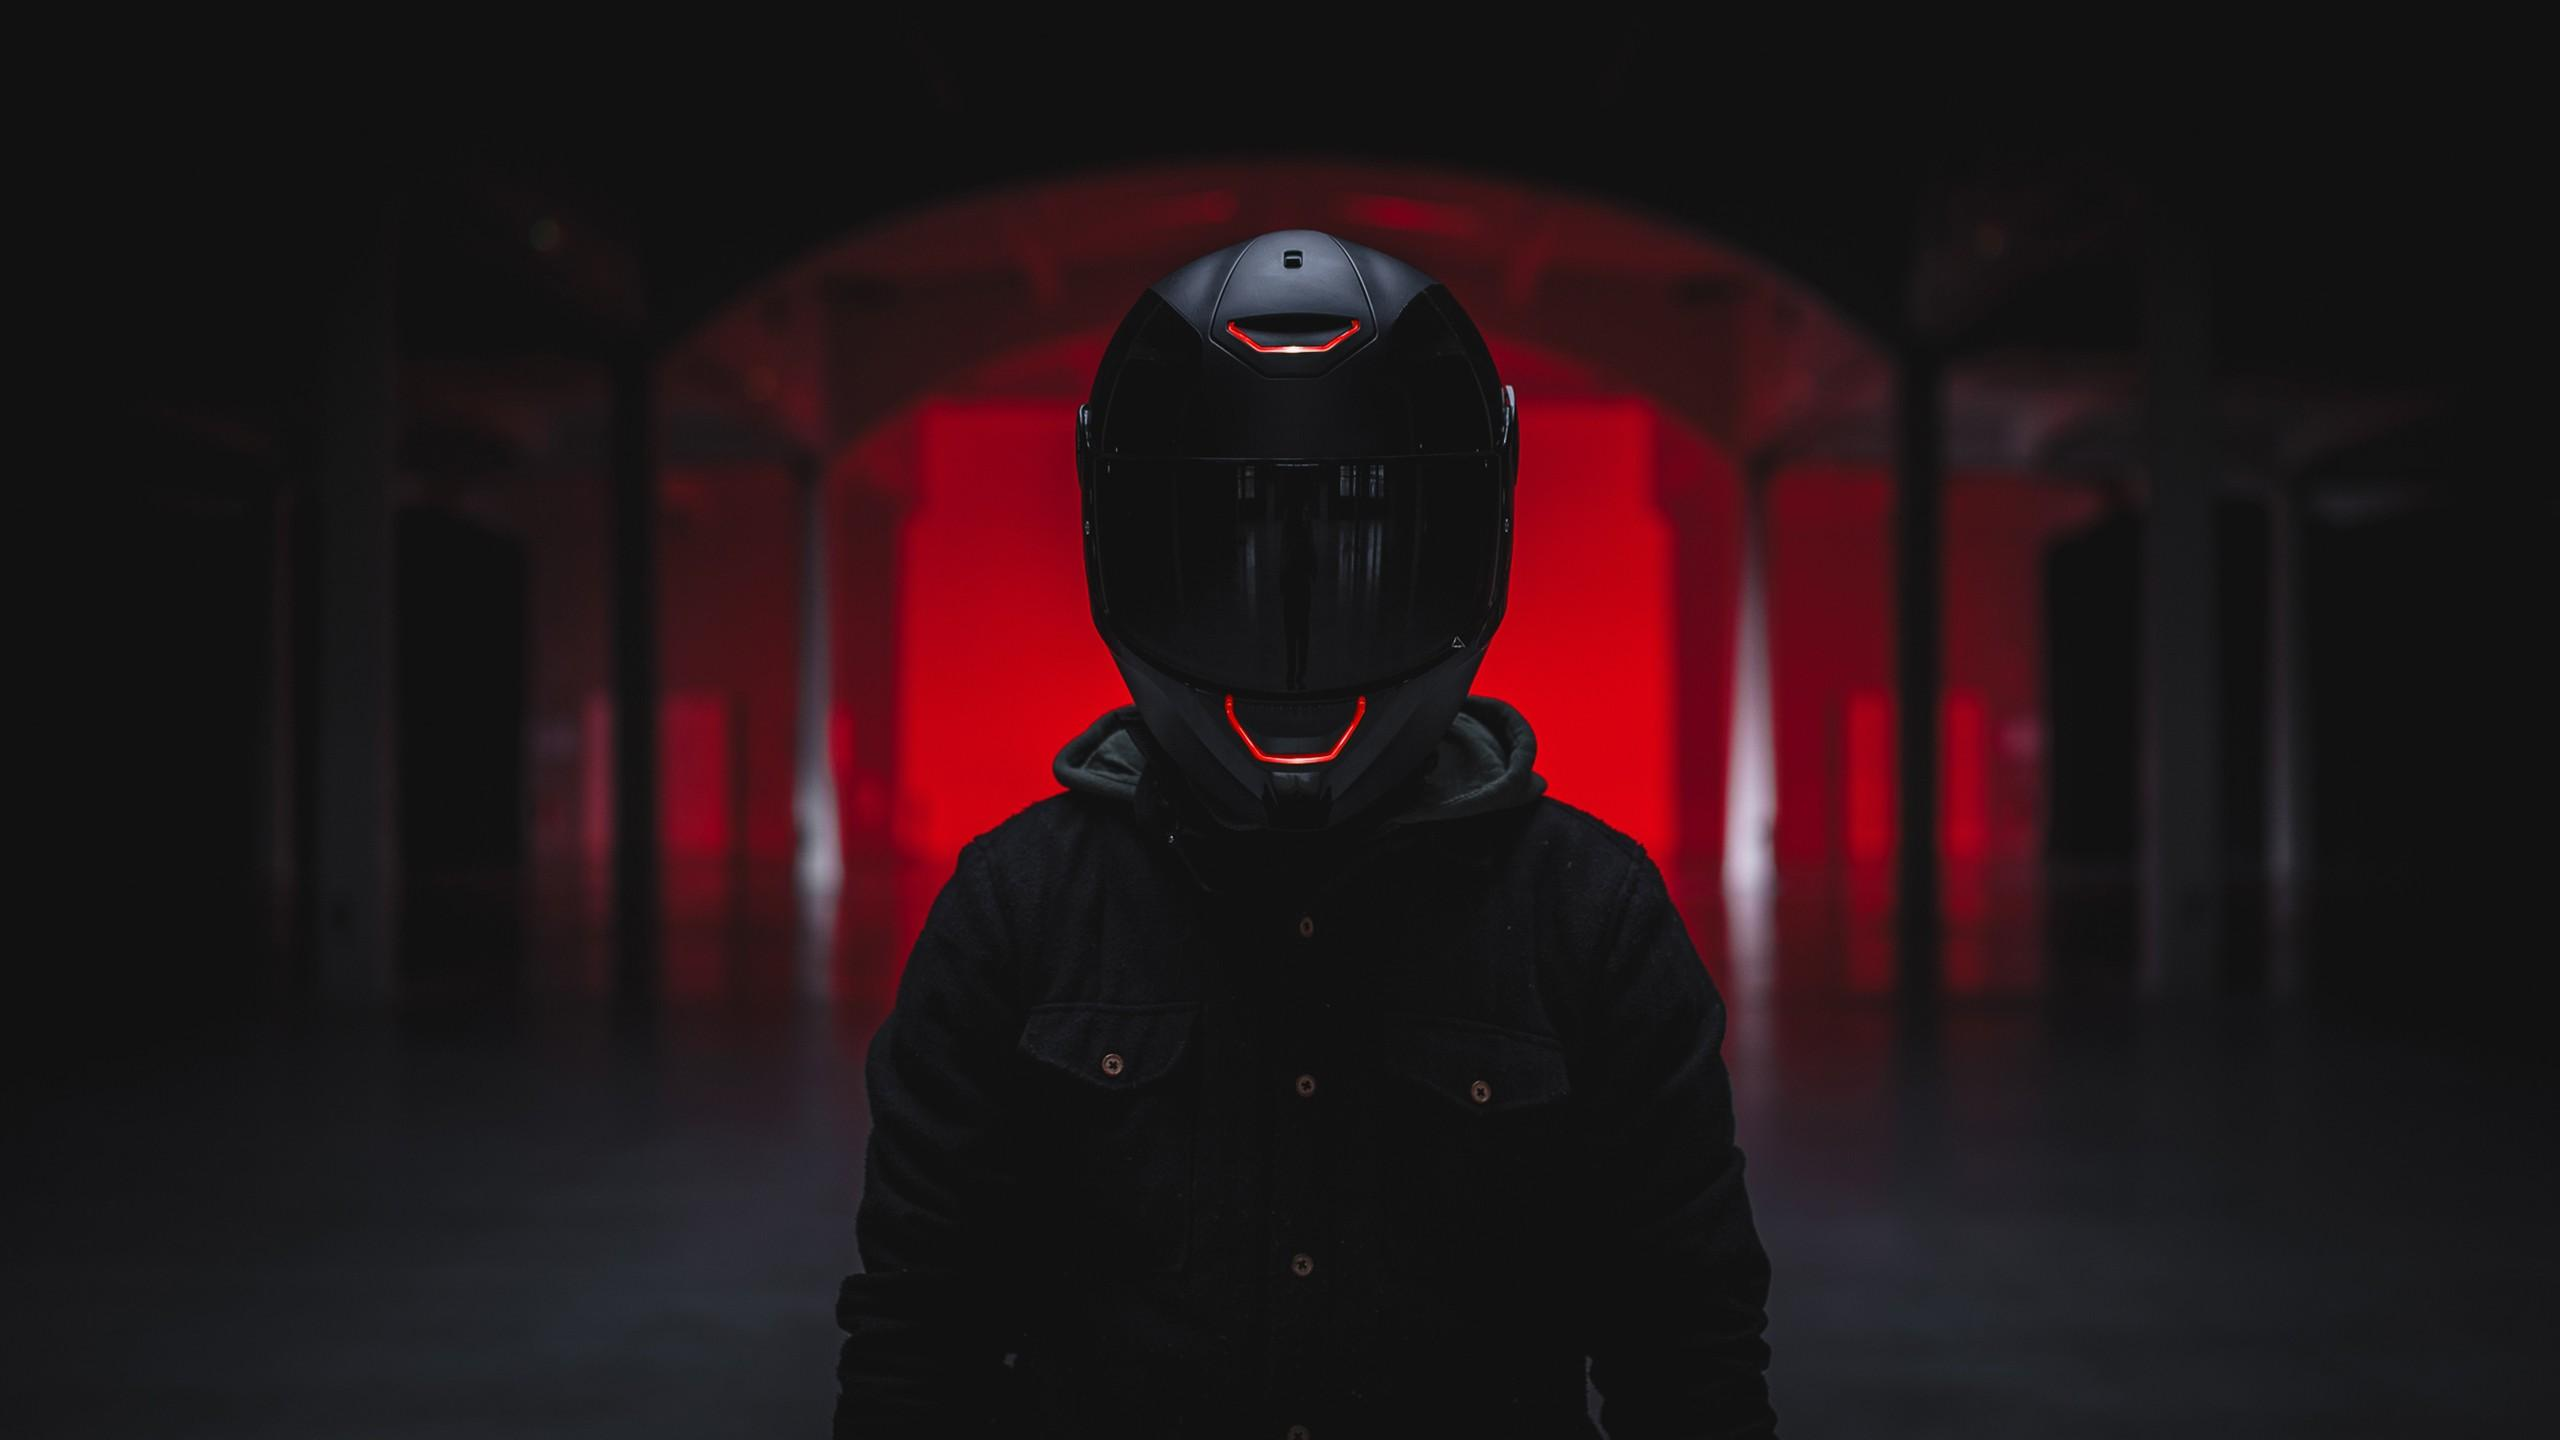 Helmet Wallpapers - Wallpaper Cave